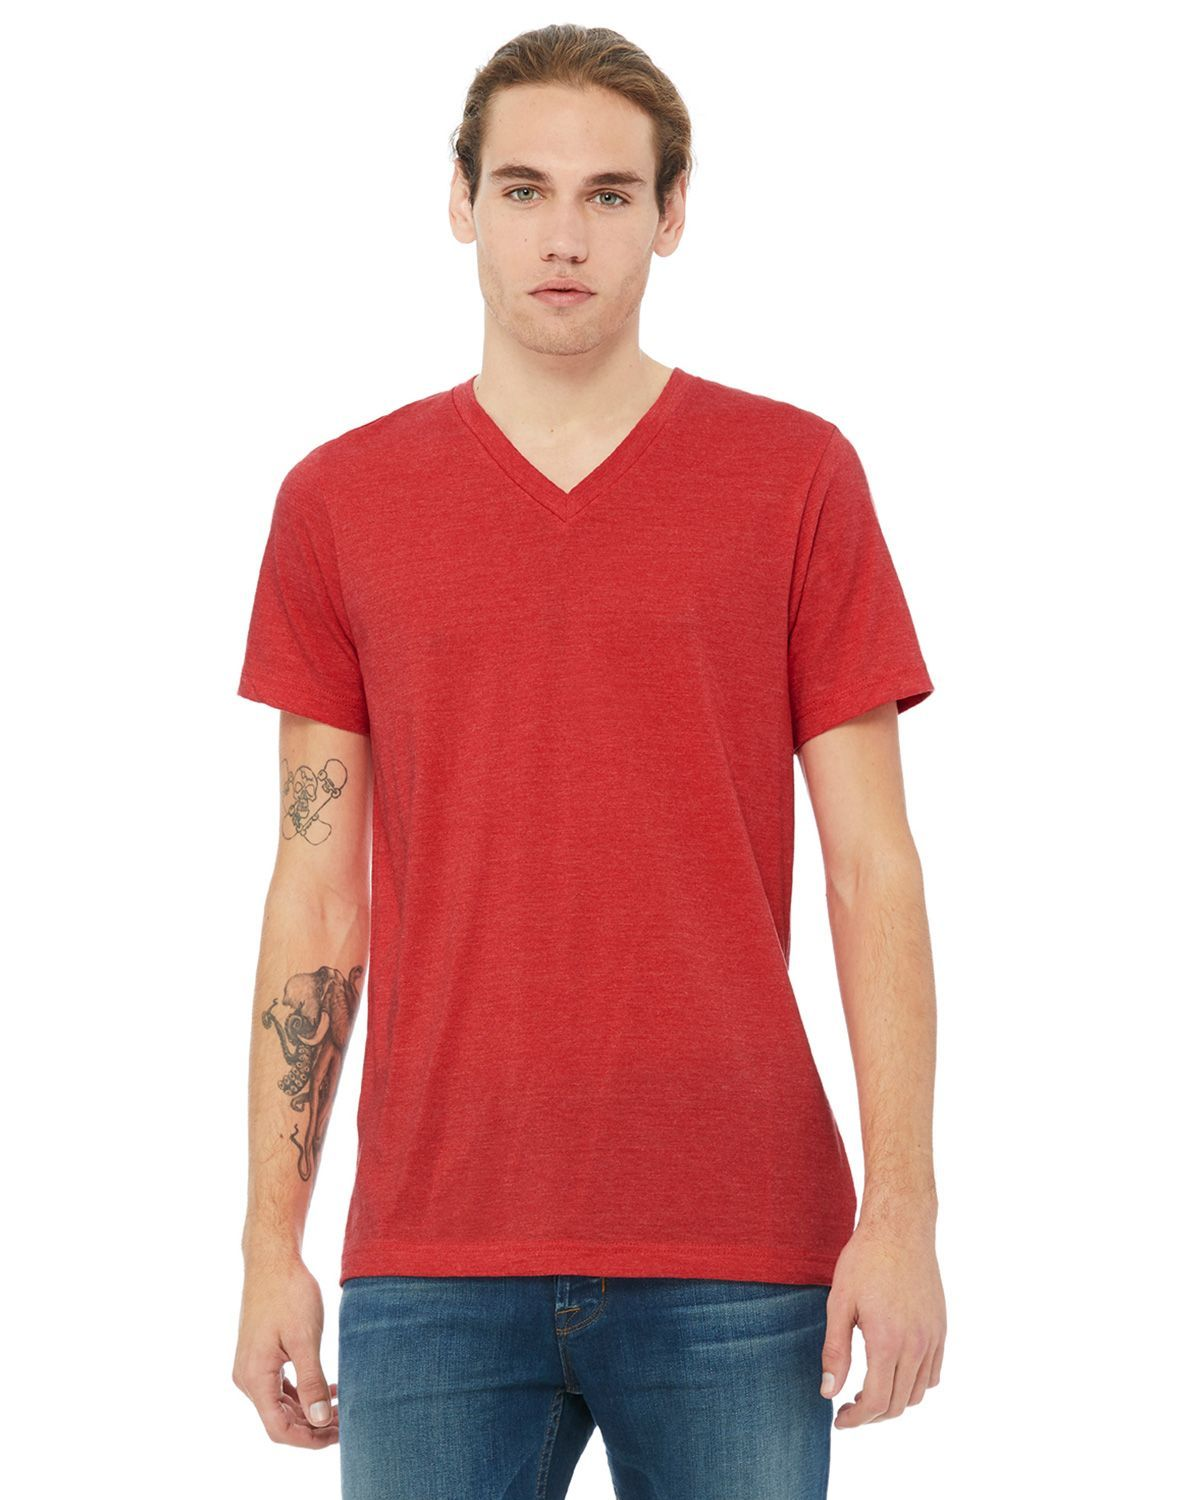 Bella + Canvas 3005 Jersey Short-Sleeve V-Neck Unisex T-Shirt - Heather Red - XS from Bella + Canvas